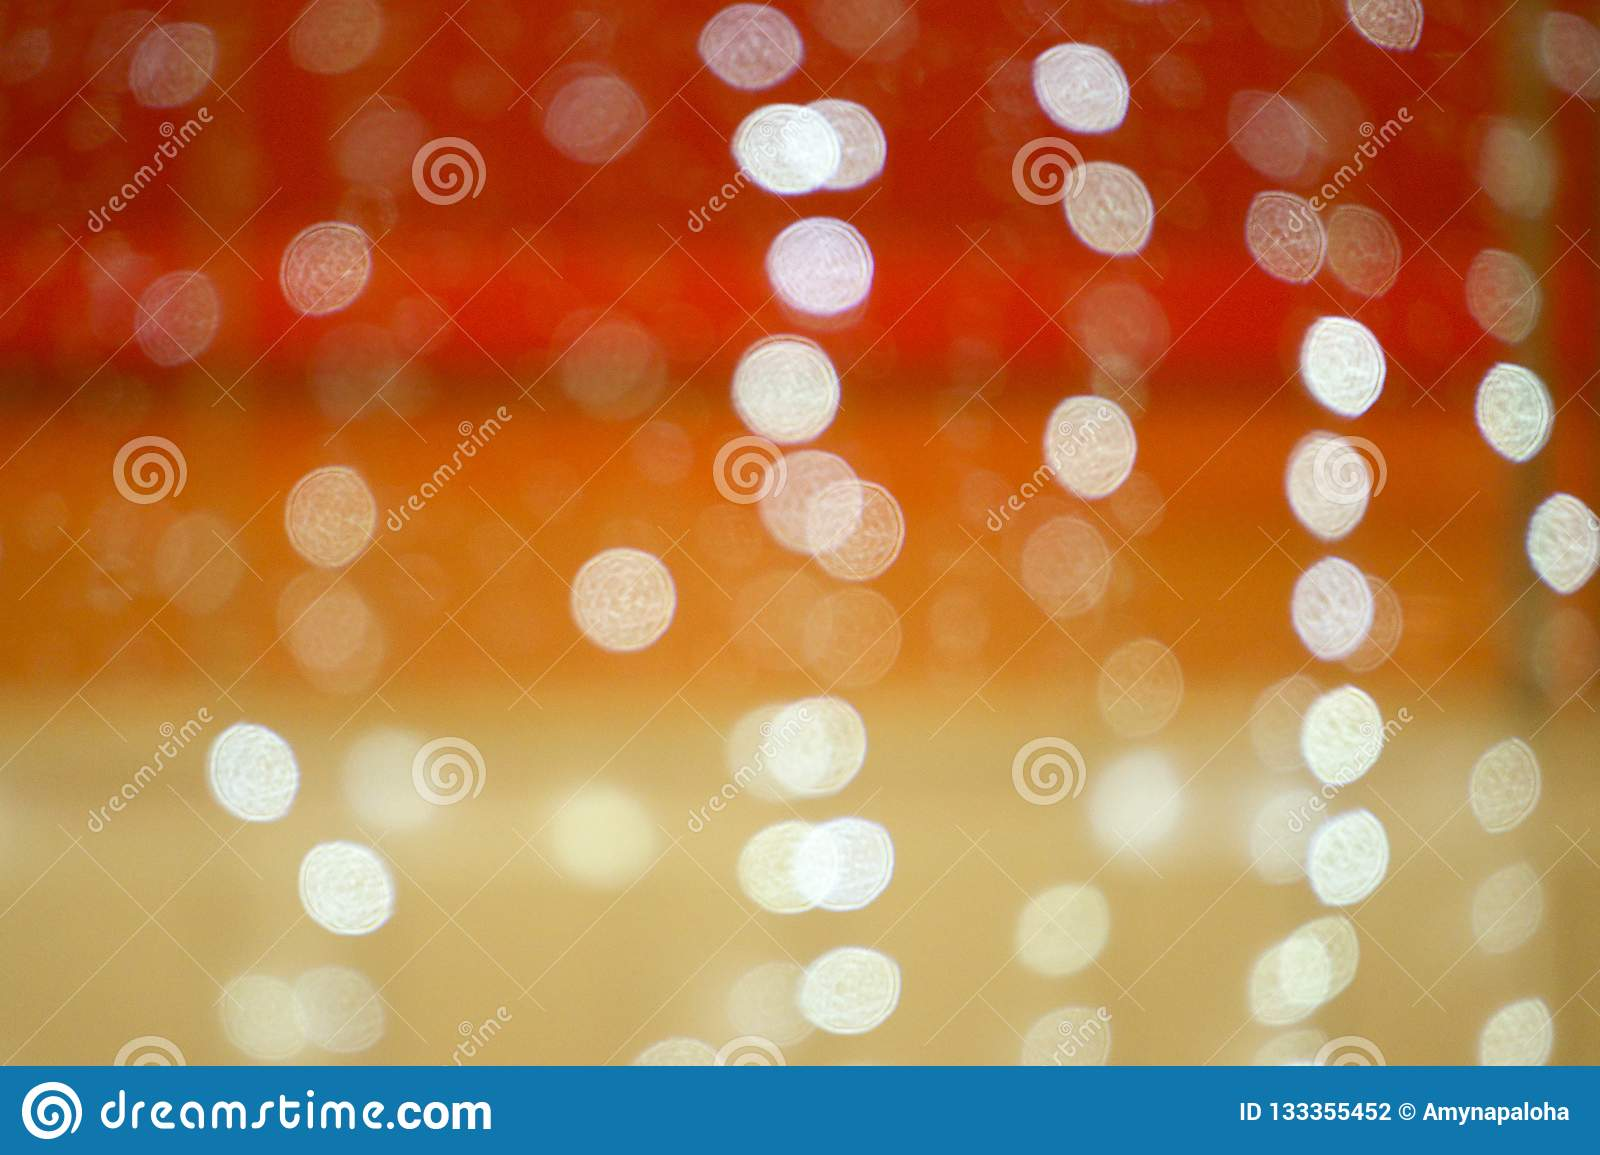 RED YELLOW ORANGE lights bokeh. Blurred abstract background